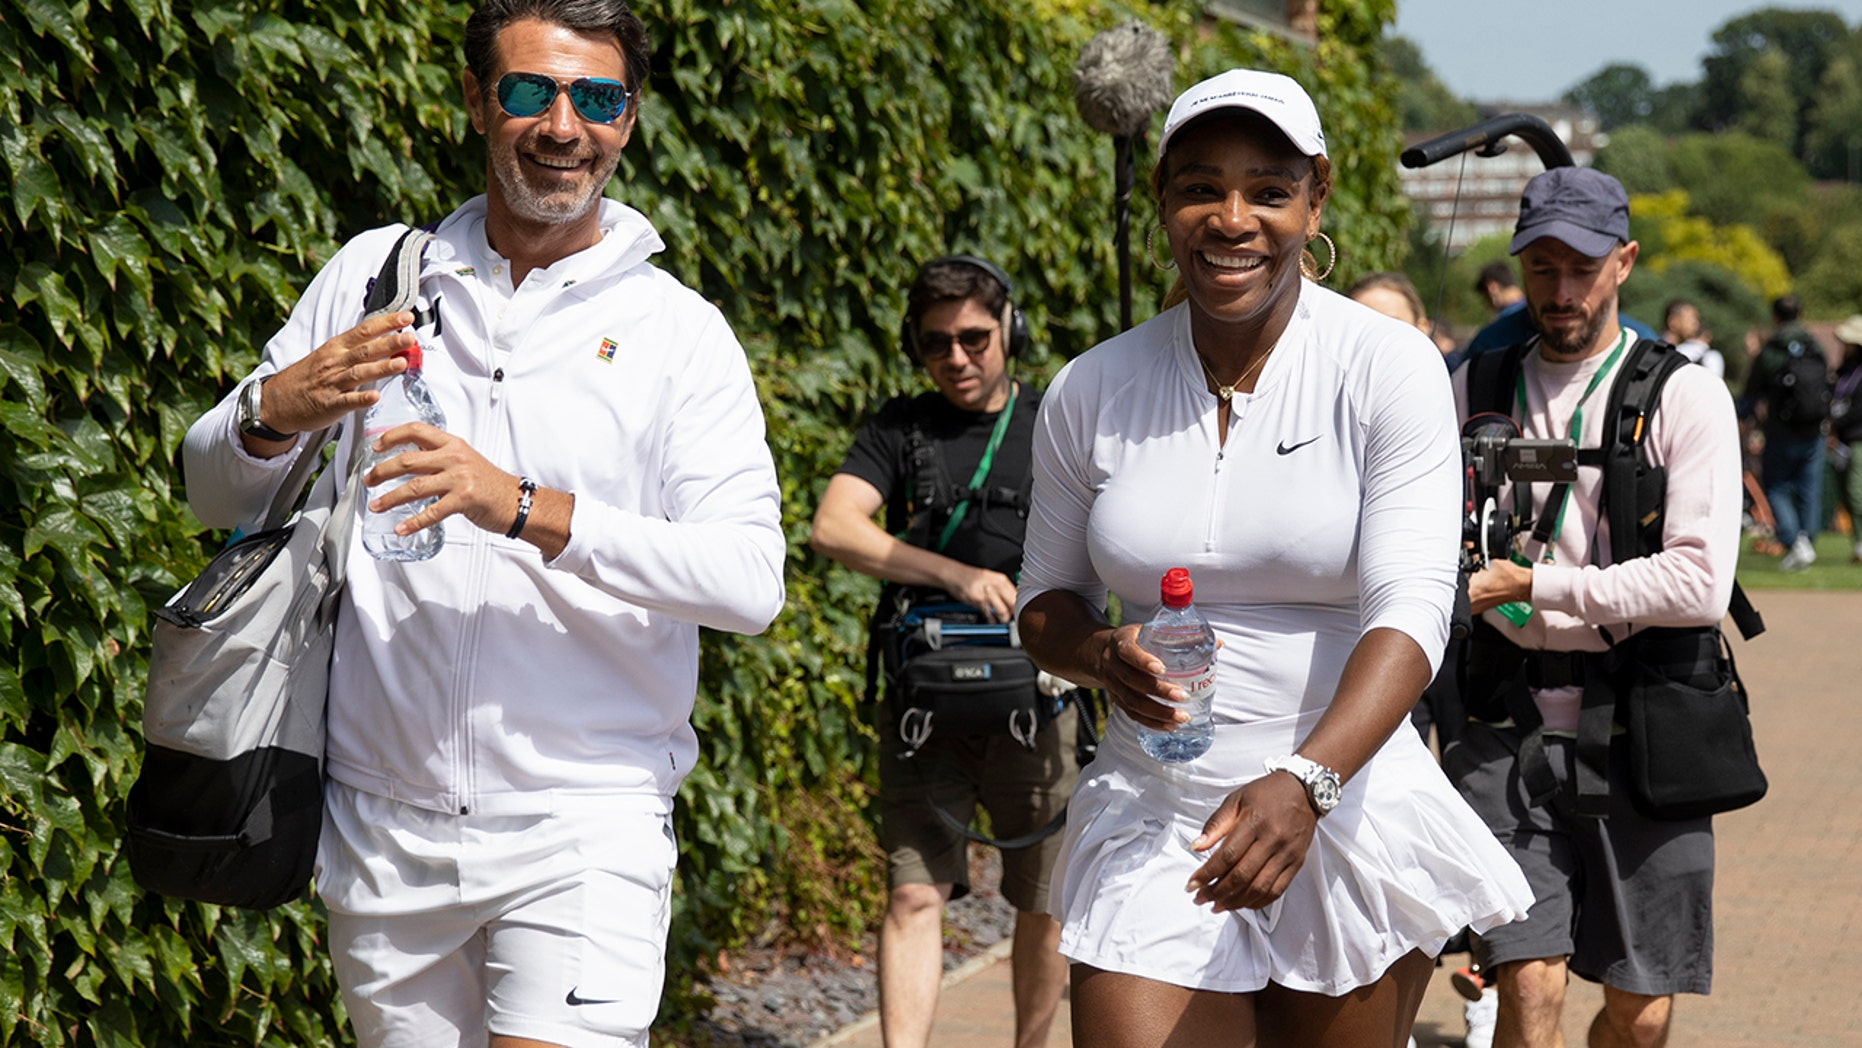 Andy Murray WILL partner up with Serena Williams in Wimbledon mixed doubles